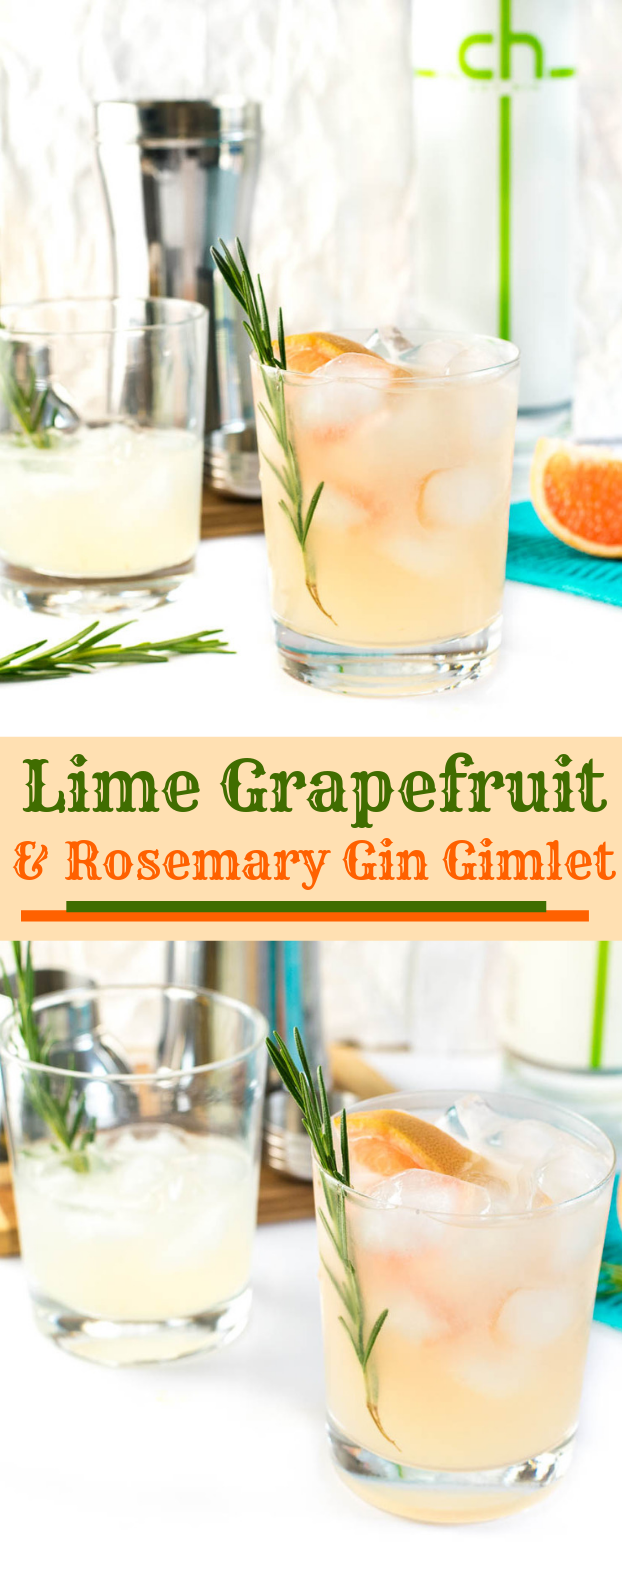 LIME GRAPEFRUIT AND ROSEMARY GIN GIMLET #drink #cocktail